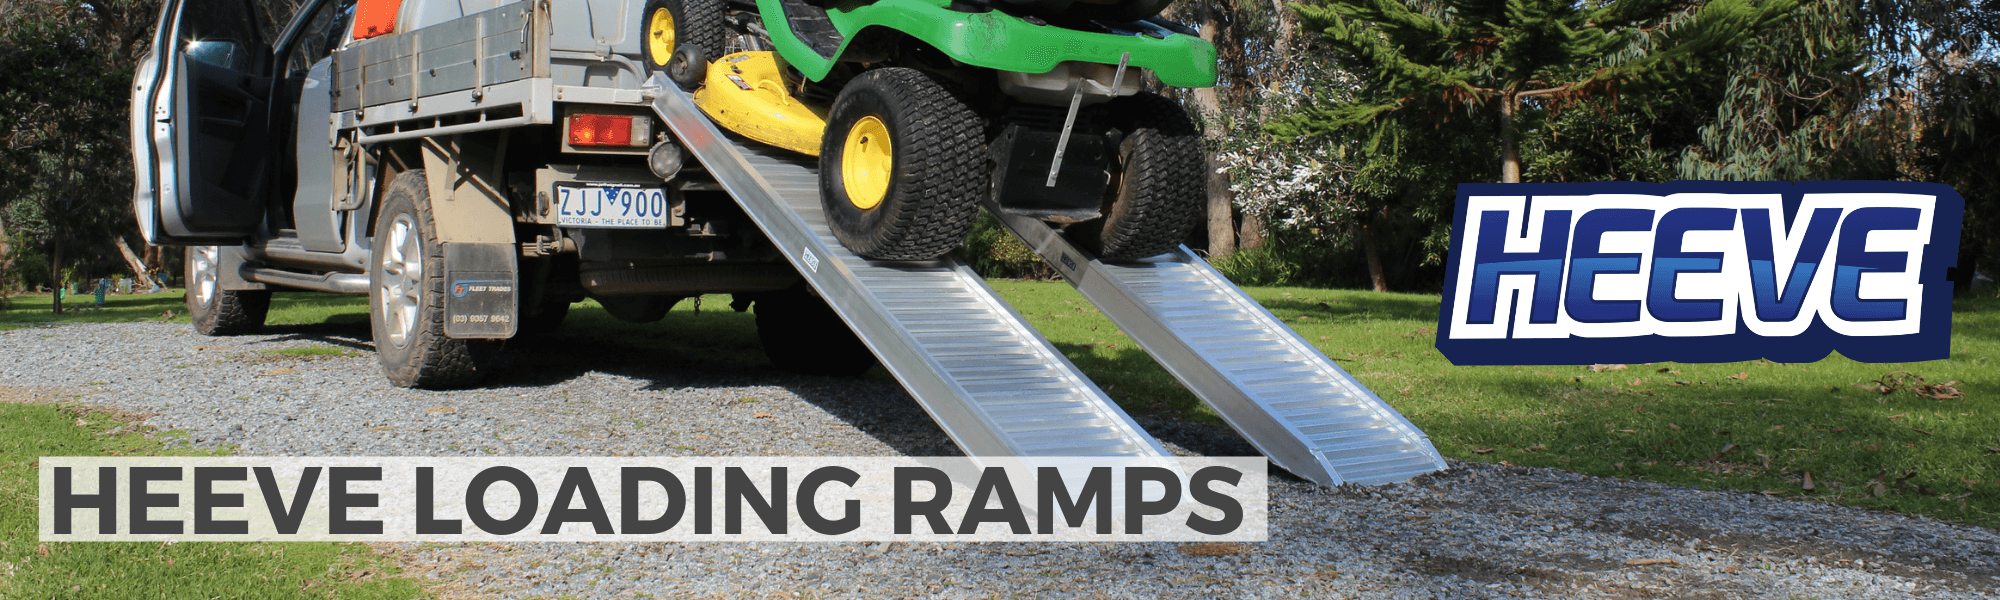 Heeve loading ramps